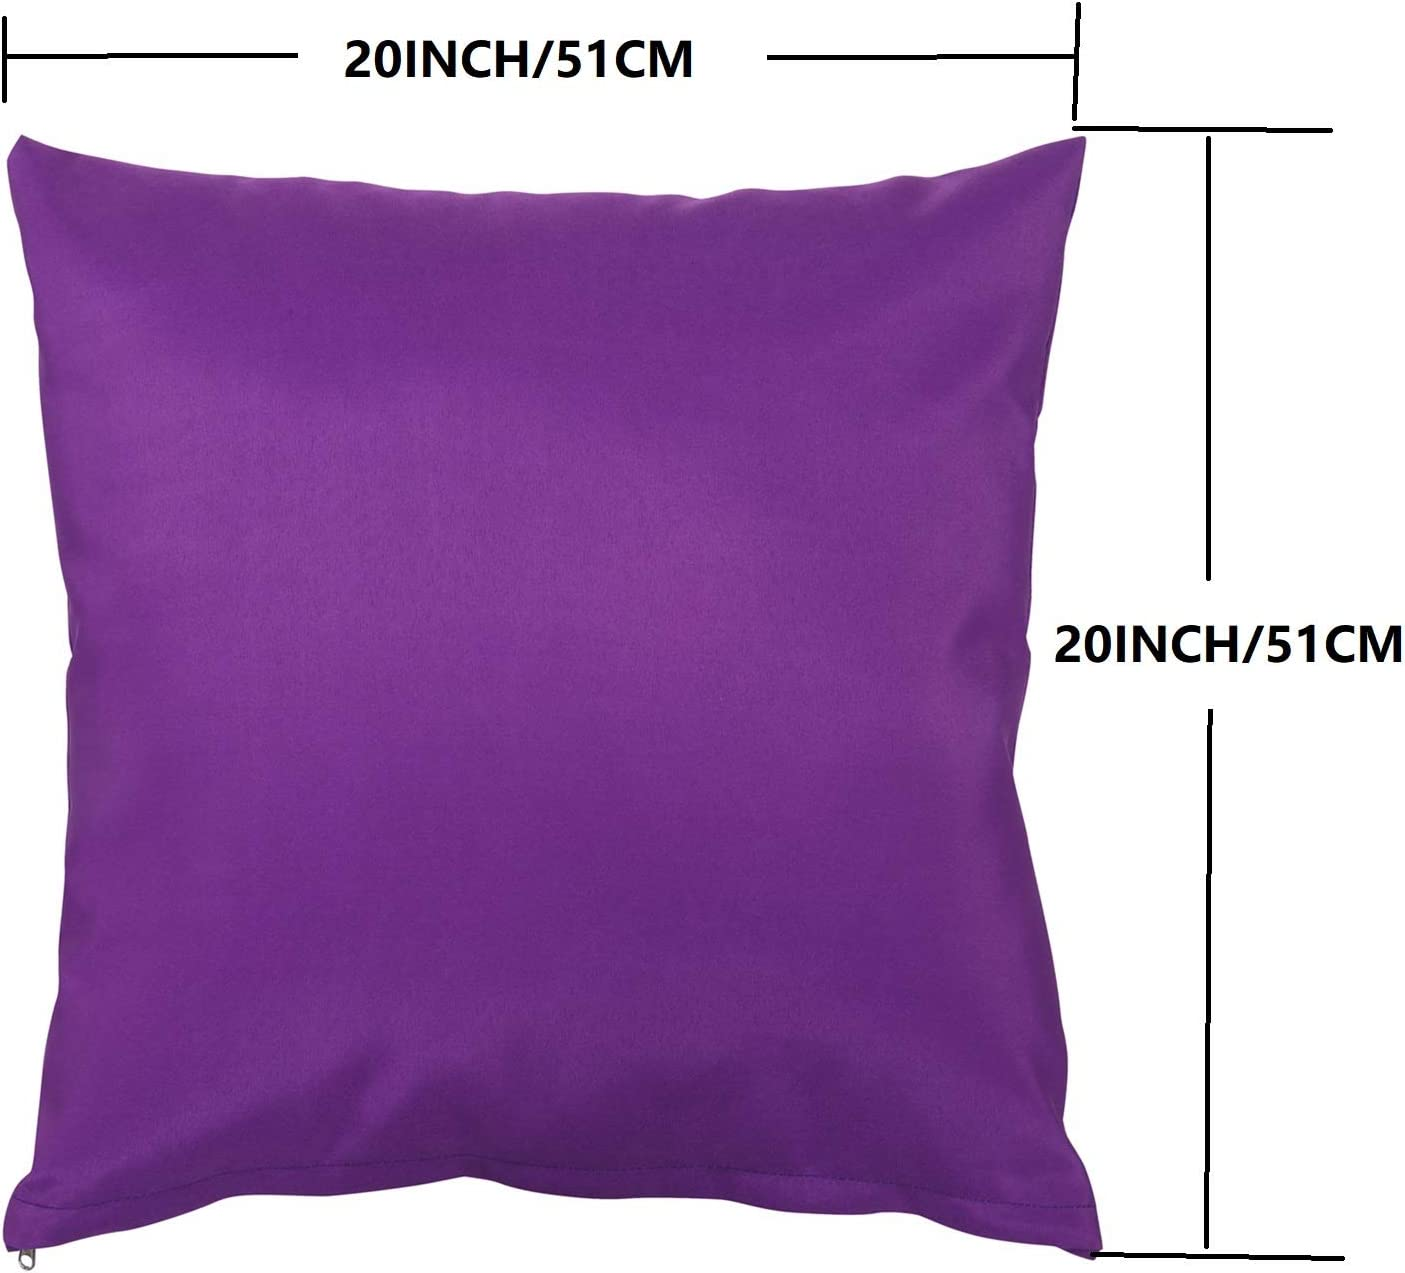 PROHIKER Set of 2 Decorative Sqaure Polyester Throw Pillow for Patio Conversation Sofa Set, 20X20IN Purple: Home & Kitchen